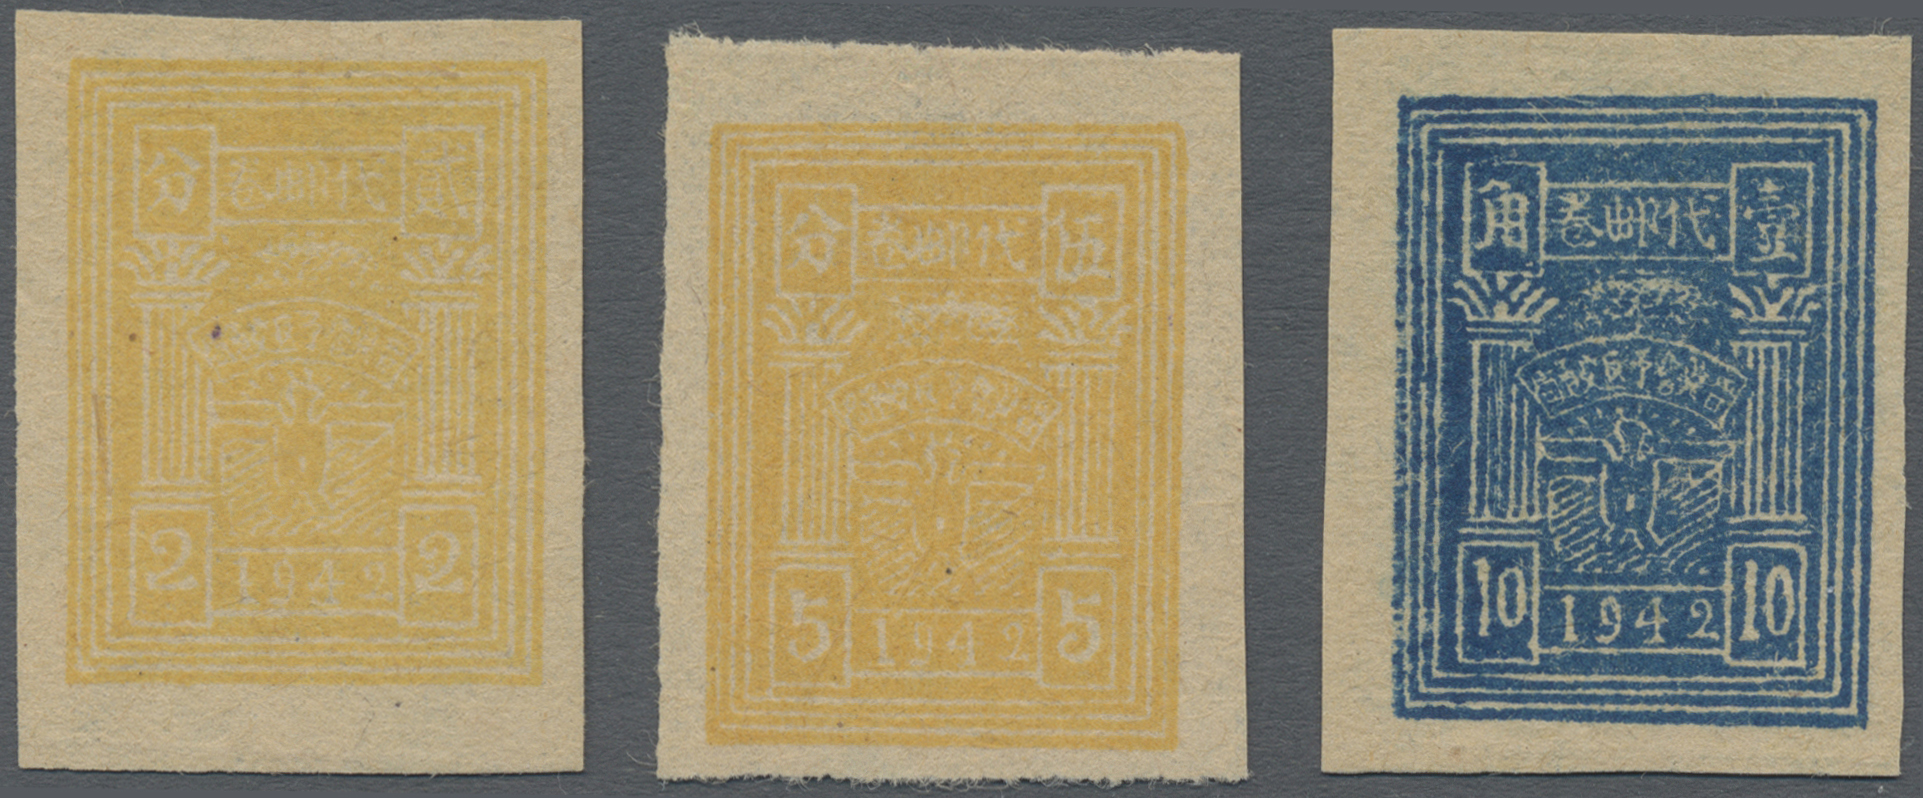 Lot 05016 - China - Volksrepublik - Provinzen  -  Auktionshaus Christoph Gärtner GmbH & Co. KG Sale #46 Special Auction China - including Liberated Areas